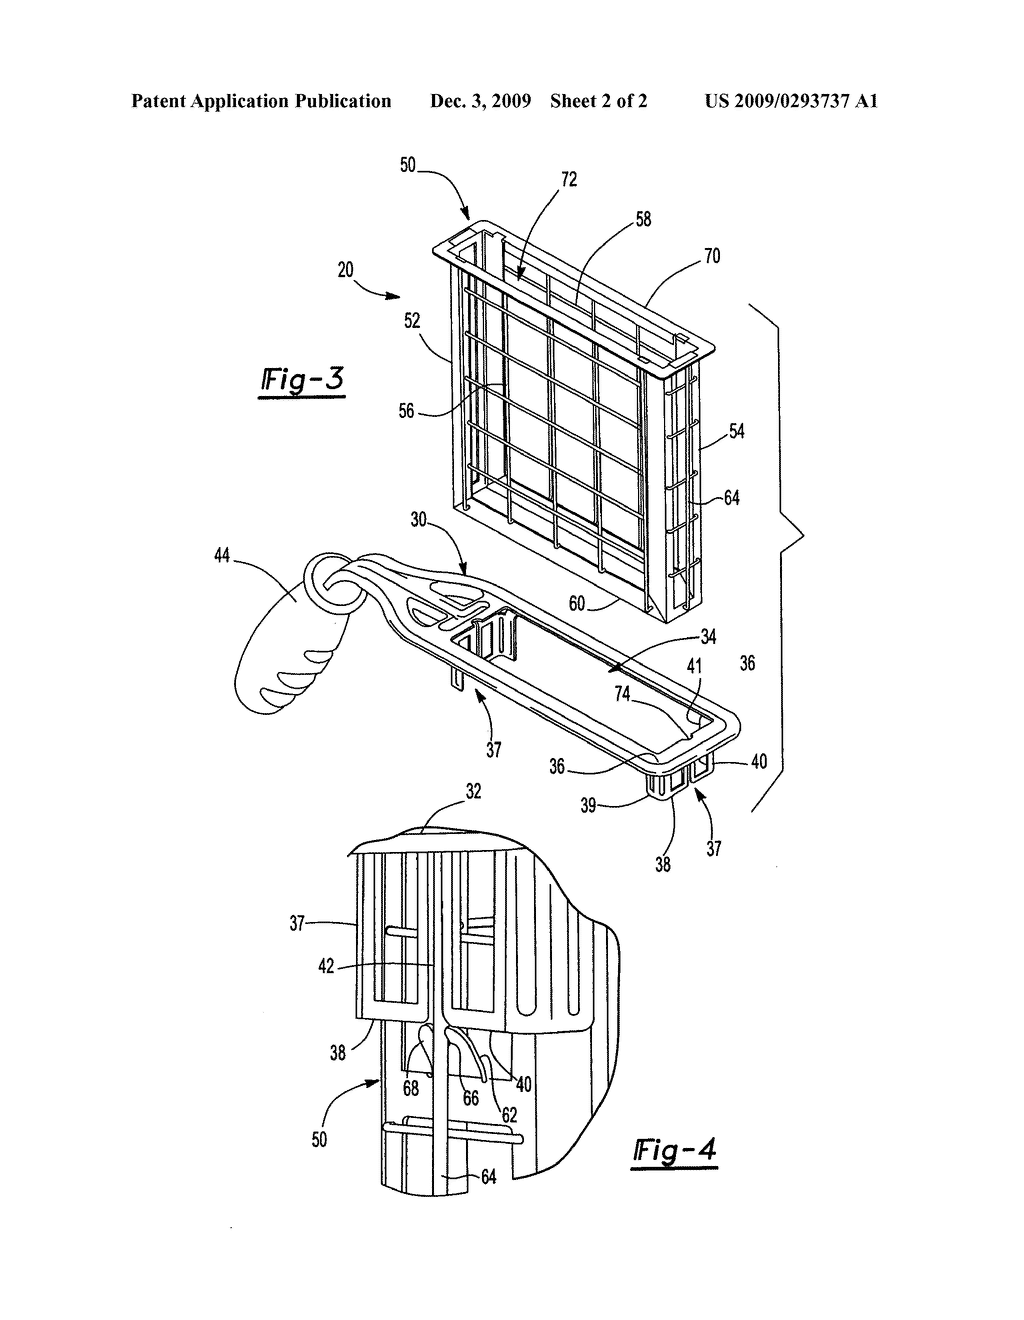 Schematic Drawing Of A Toaster Electrical Wiring Diagrams Removable Basket With Handle Diagram And Image 03 Kenworth T800